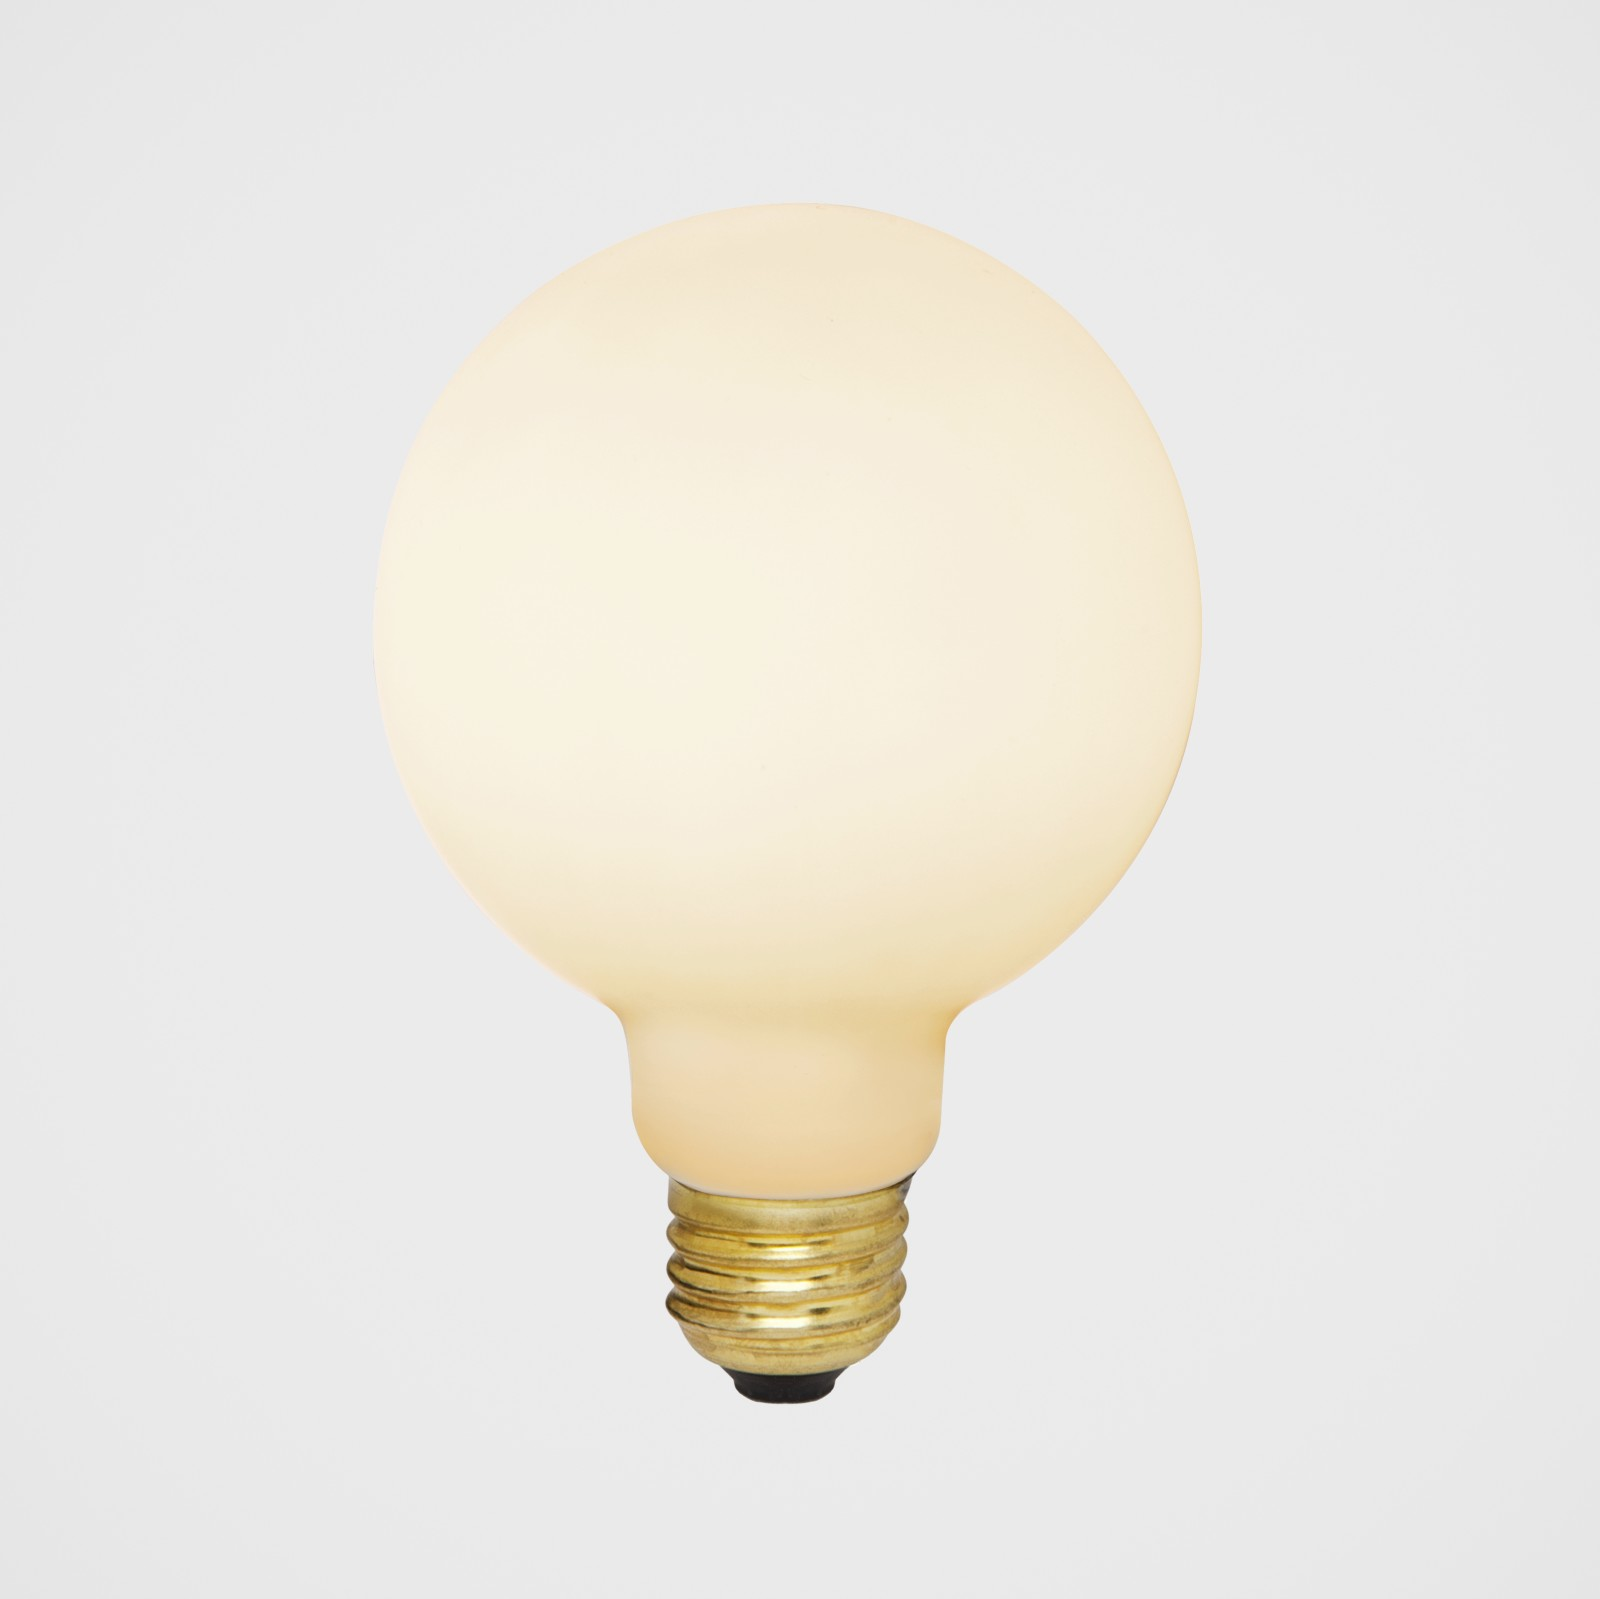 Porcelain II 6W LED lightbulb Porcelain II 6W LED lightbulb